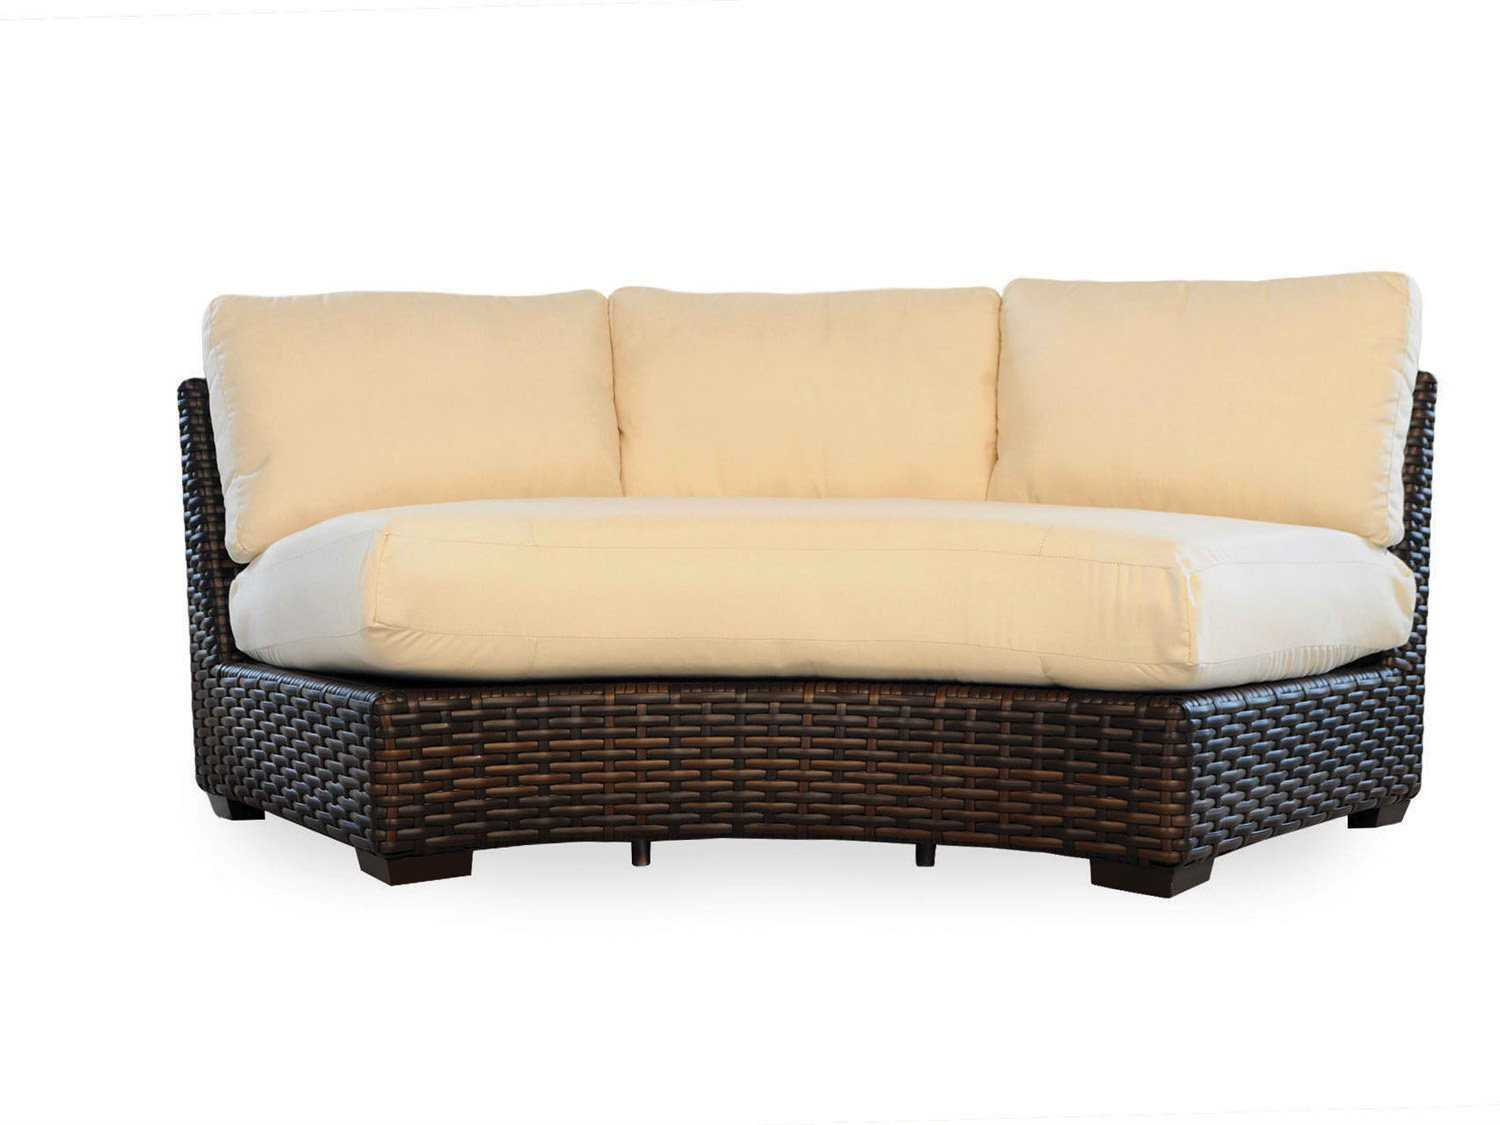 outdoor furniture covers curved sofa mainstays sleeper lloyd flanders contempo replacement seat and back cushion